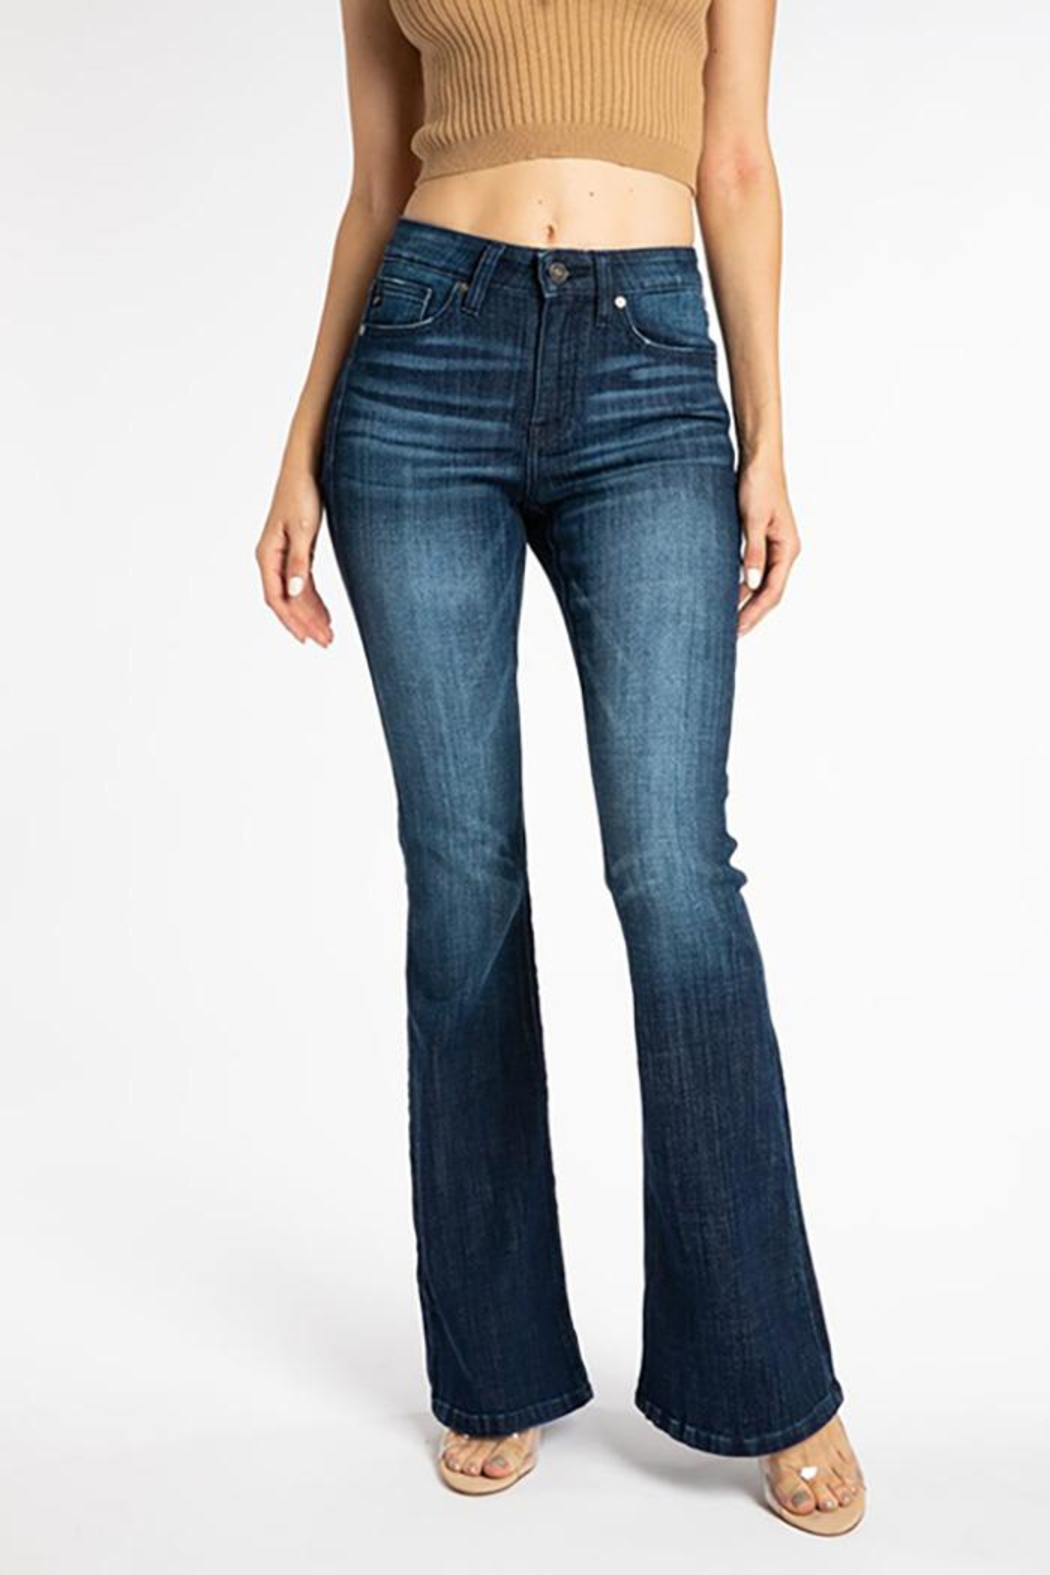 KanCan Mid Rise Flare Jeans - Main Image